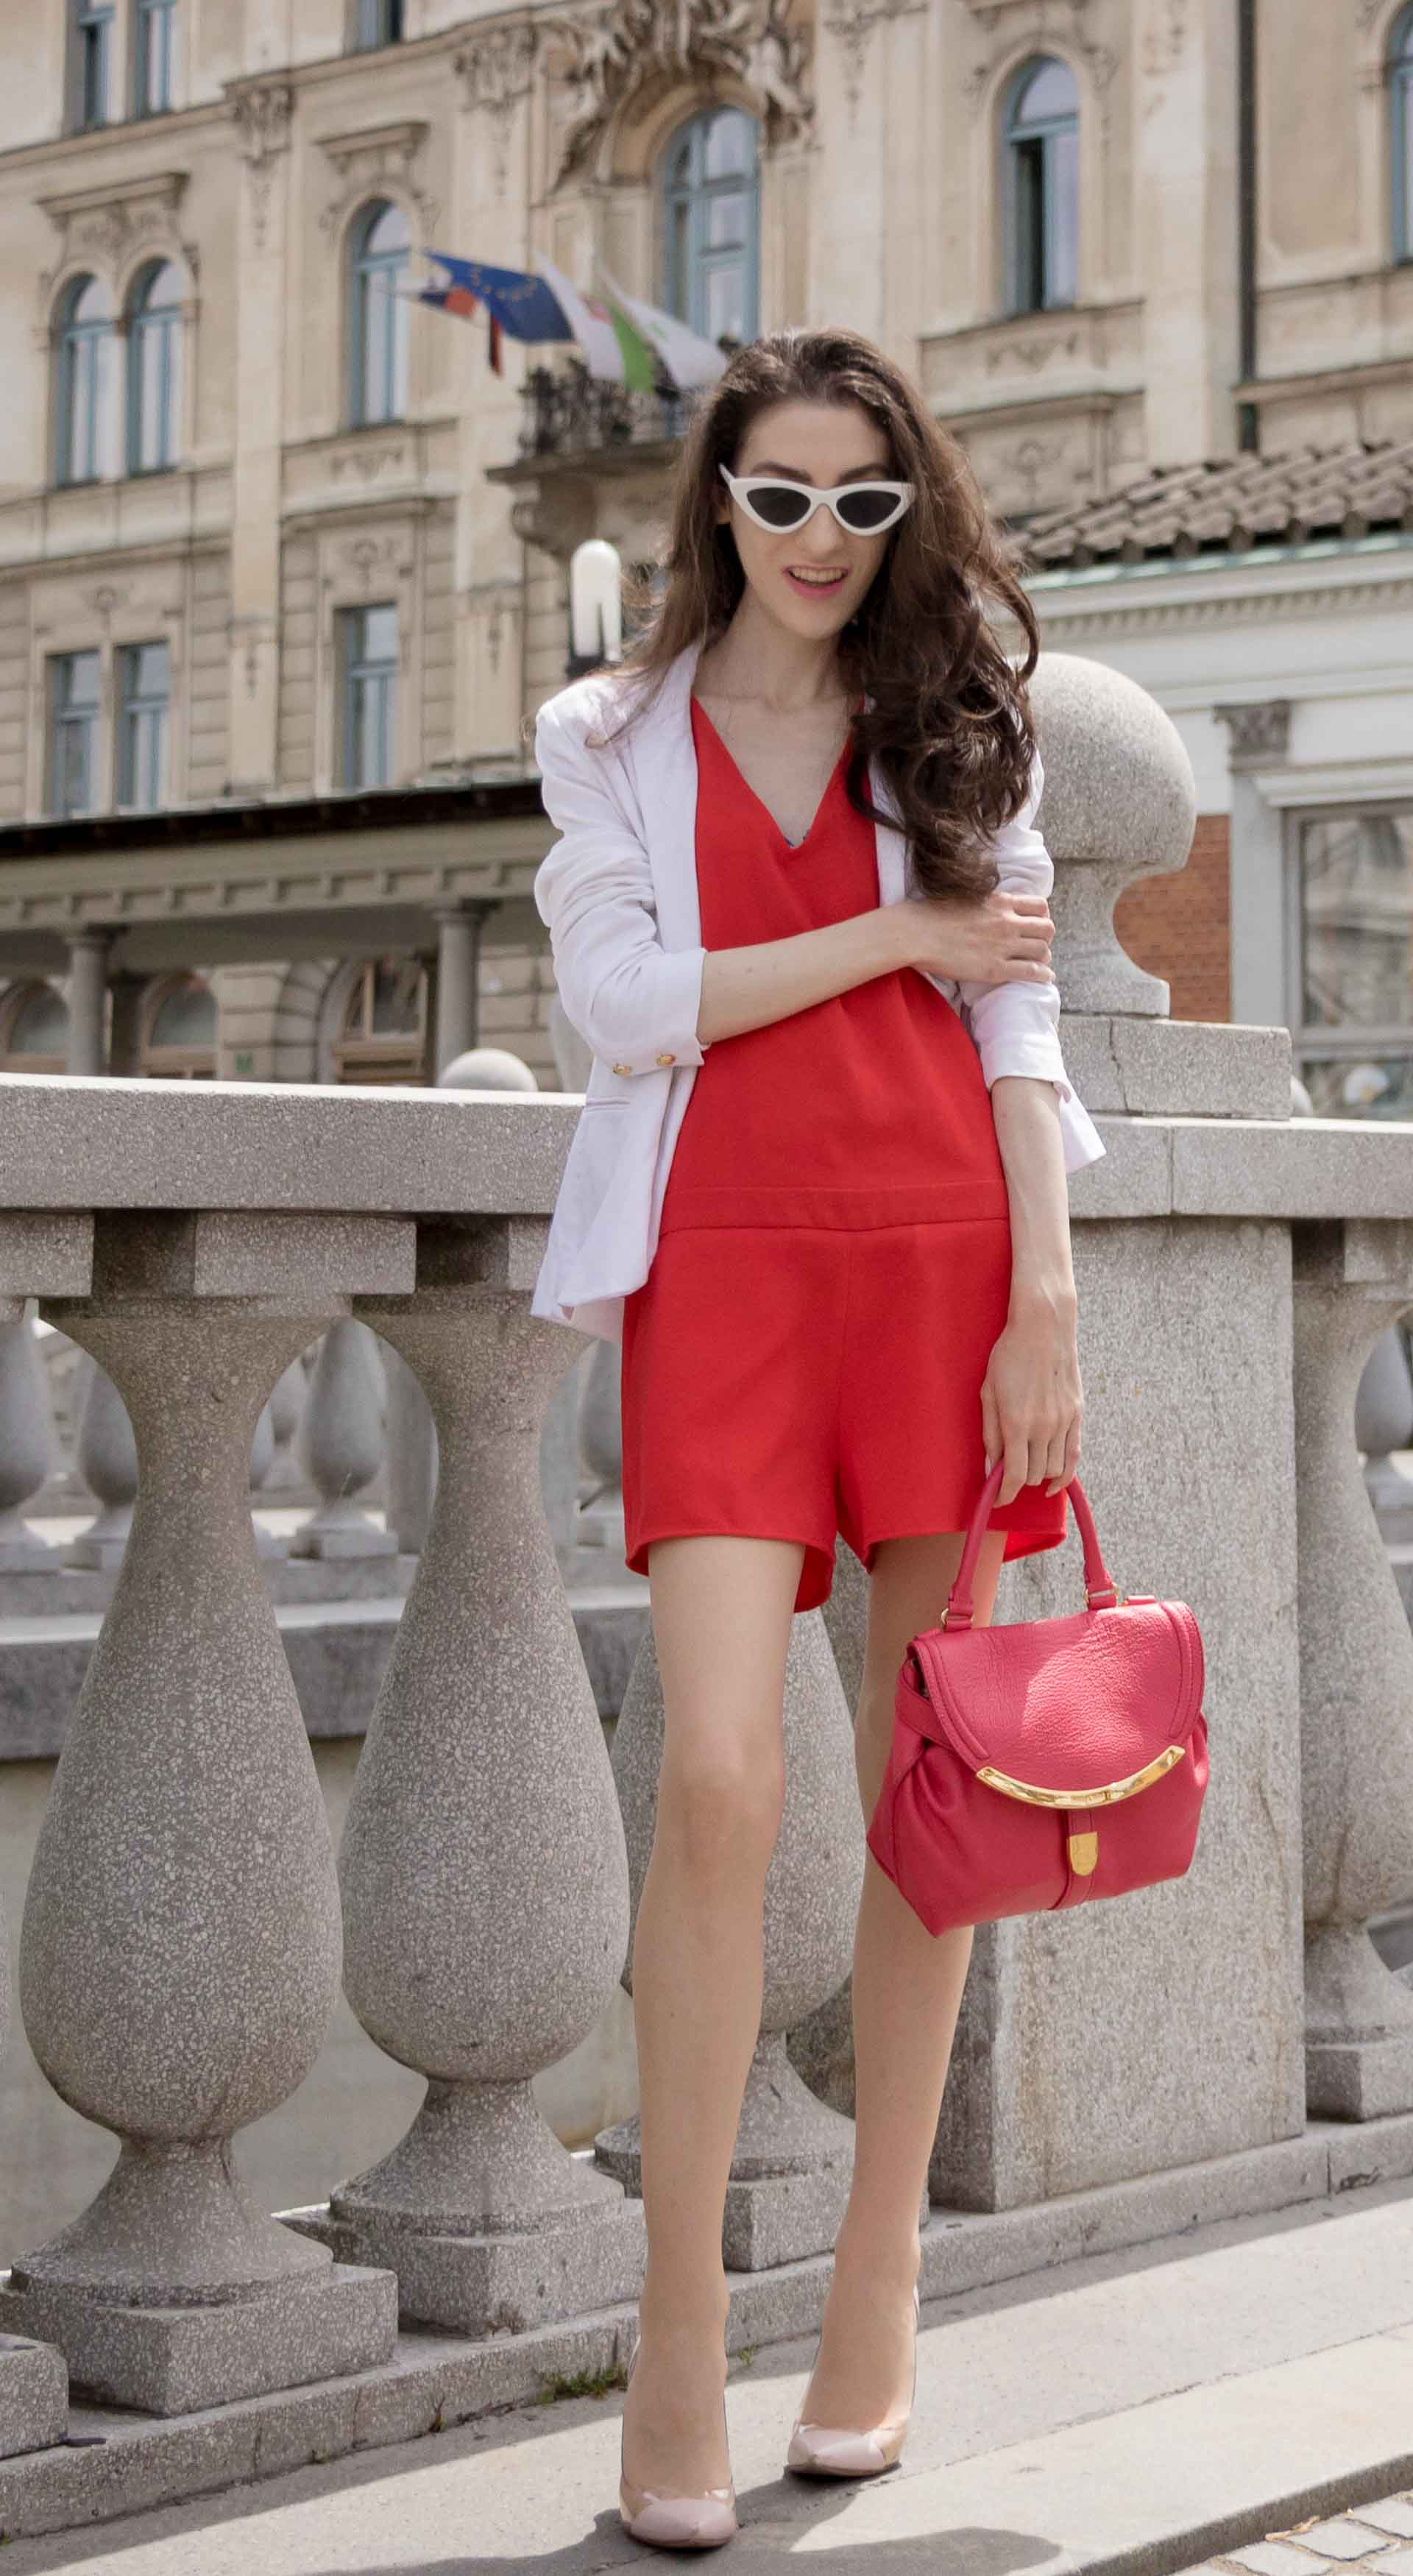 Veronika Lipar Fashion Editor of Brunette from Wall Street dressed in red playsuit, white blazer, Adam Selman x Le Specs white cat eye Lolita sunglasses, pink top handle See by Chloe bag, Gianvito Rossi plexi pumps